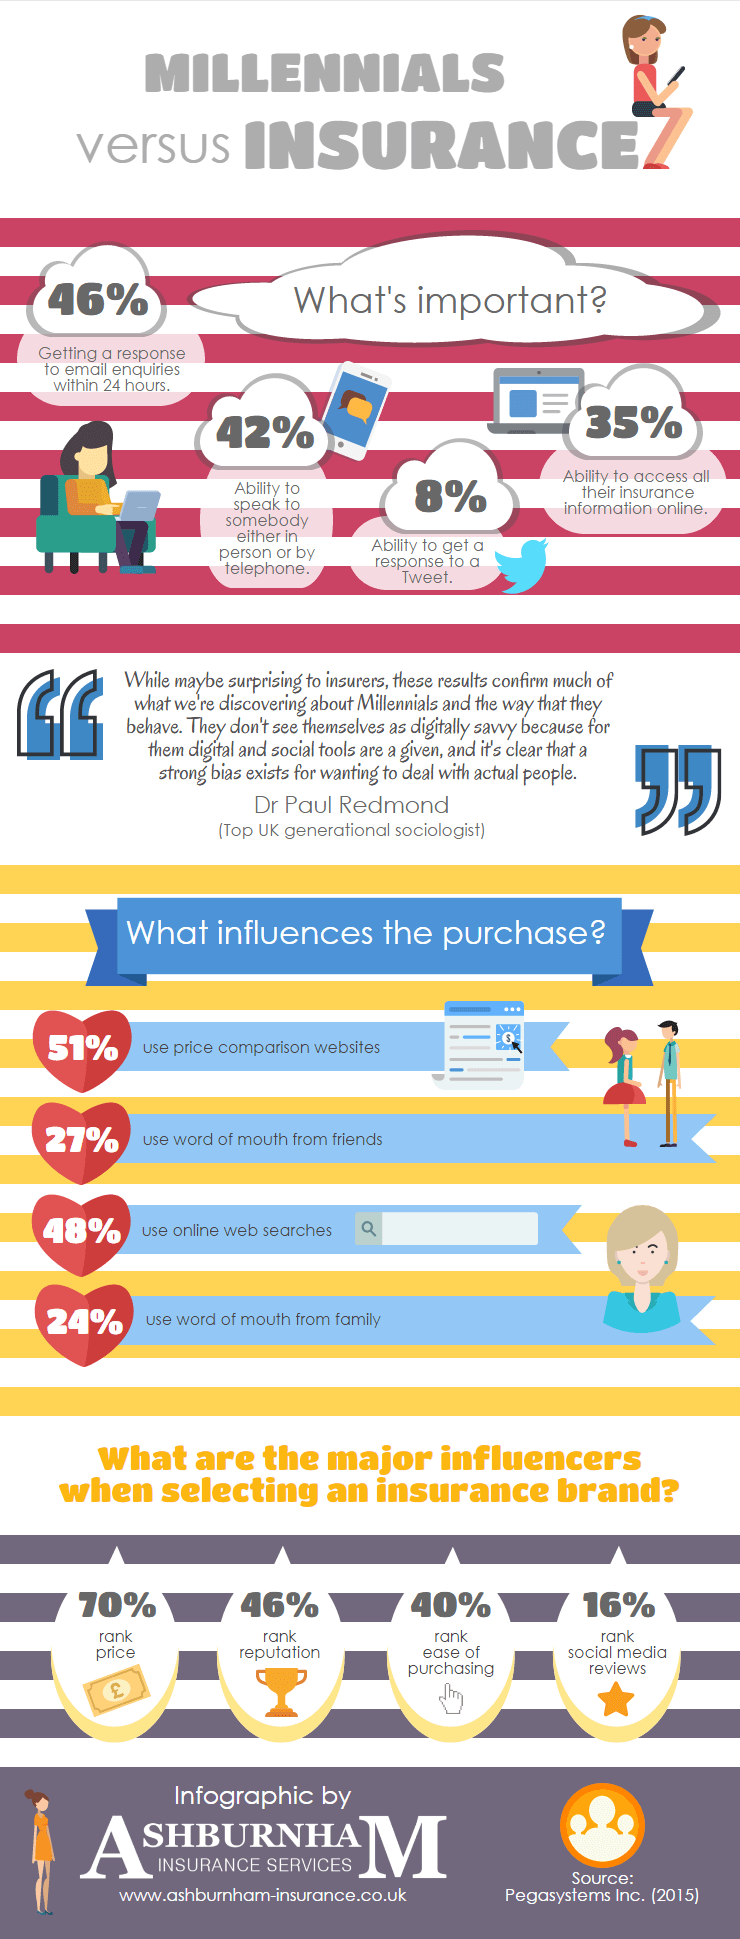 Millennials vs Insurance Infographic